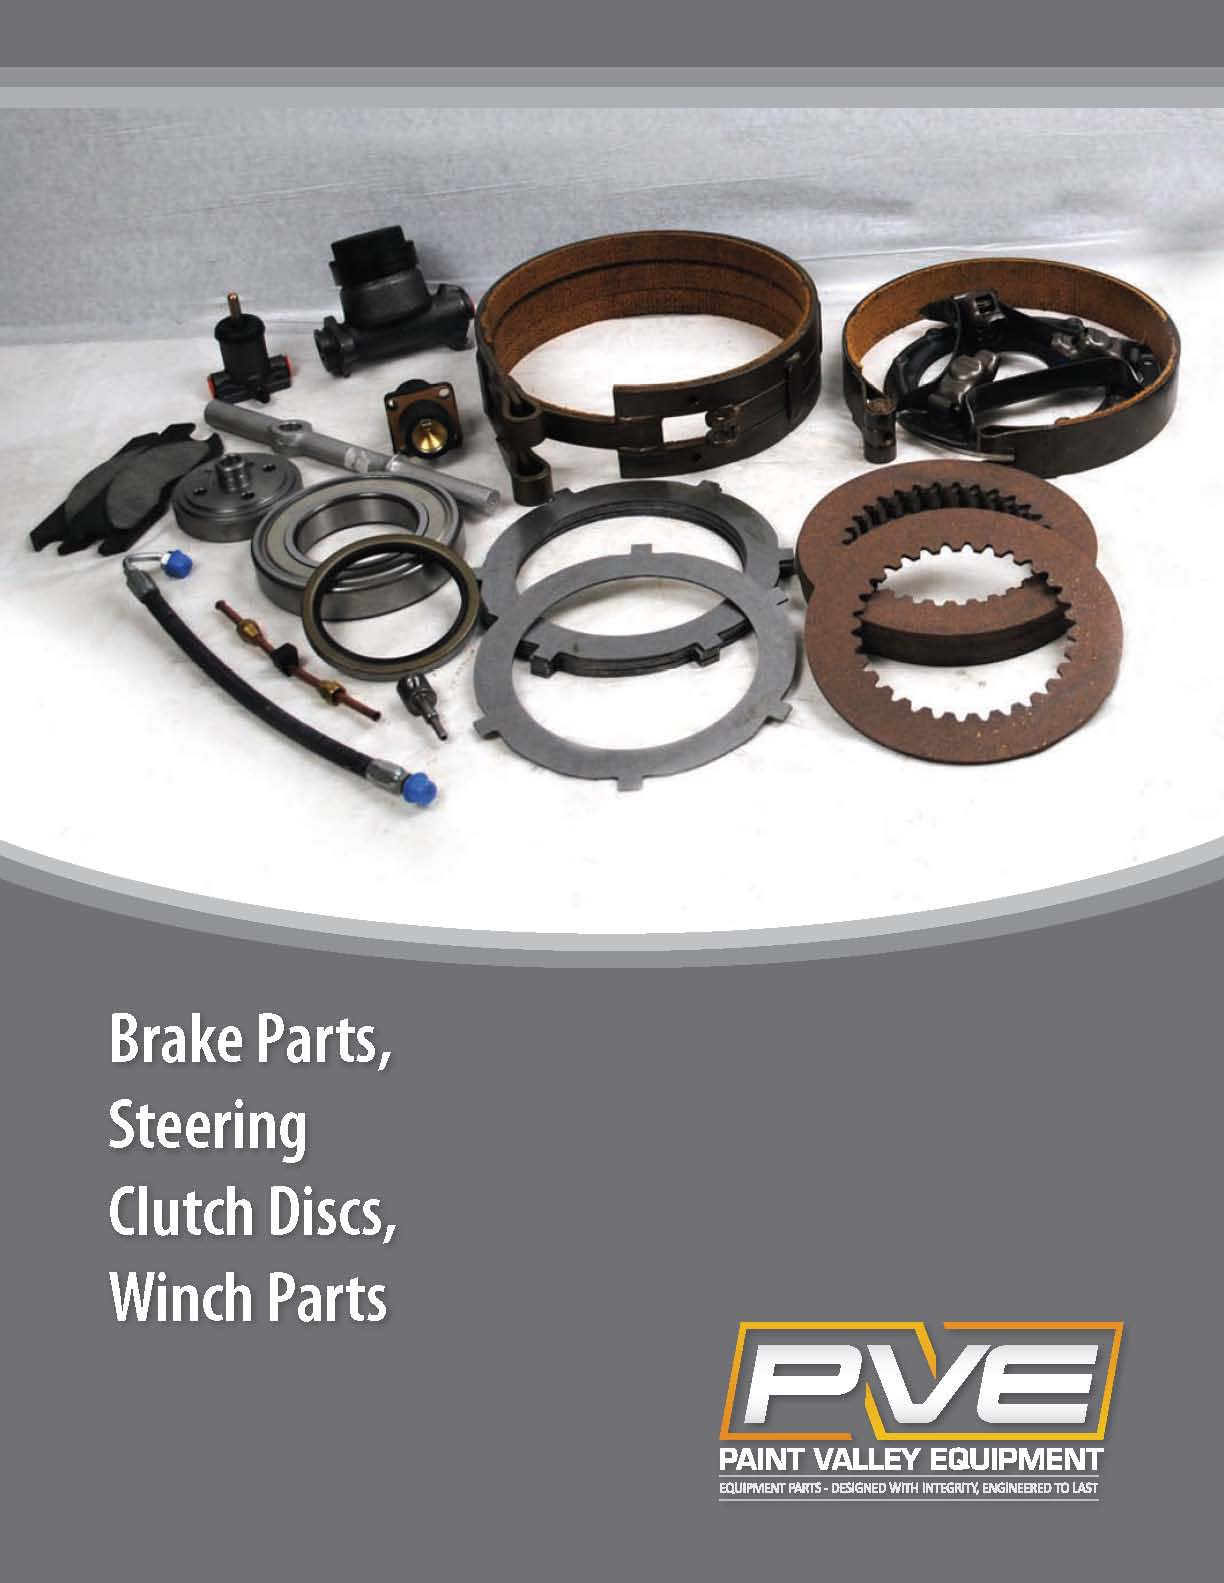 Section_F winch parts, brake parts, steering clutch discs paint valley equipment